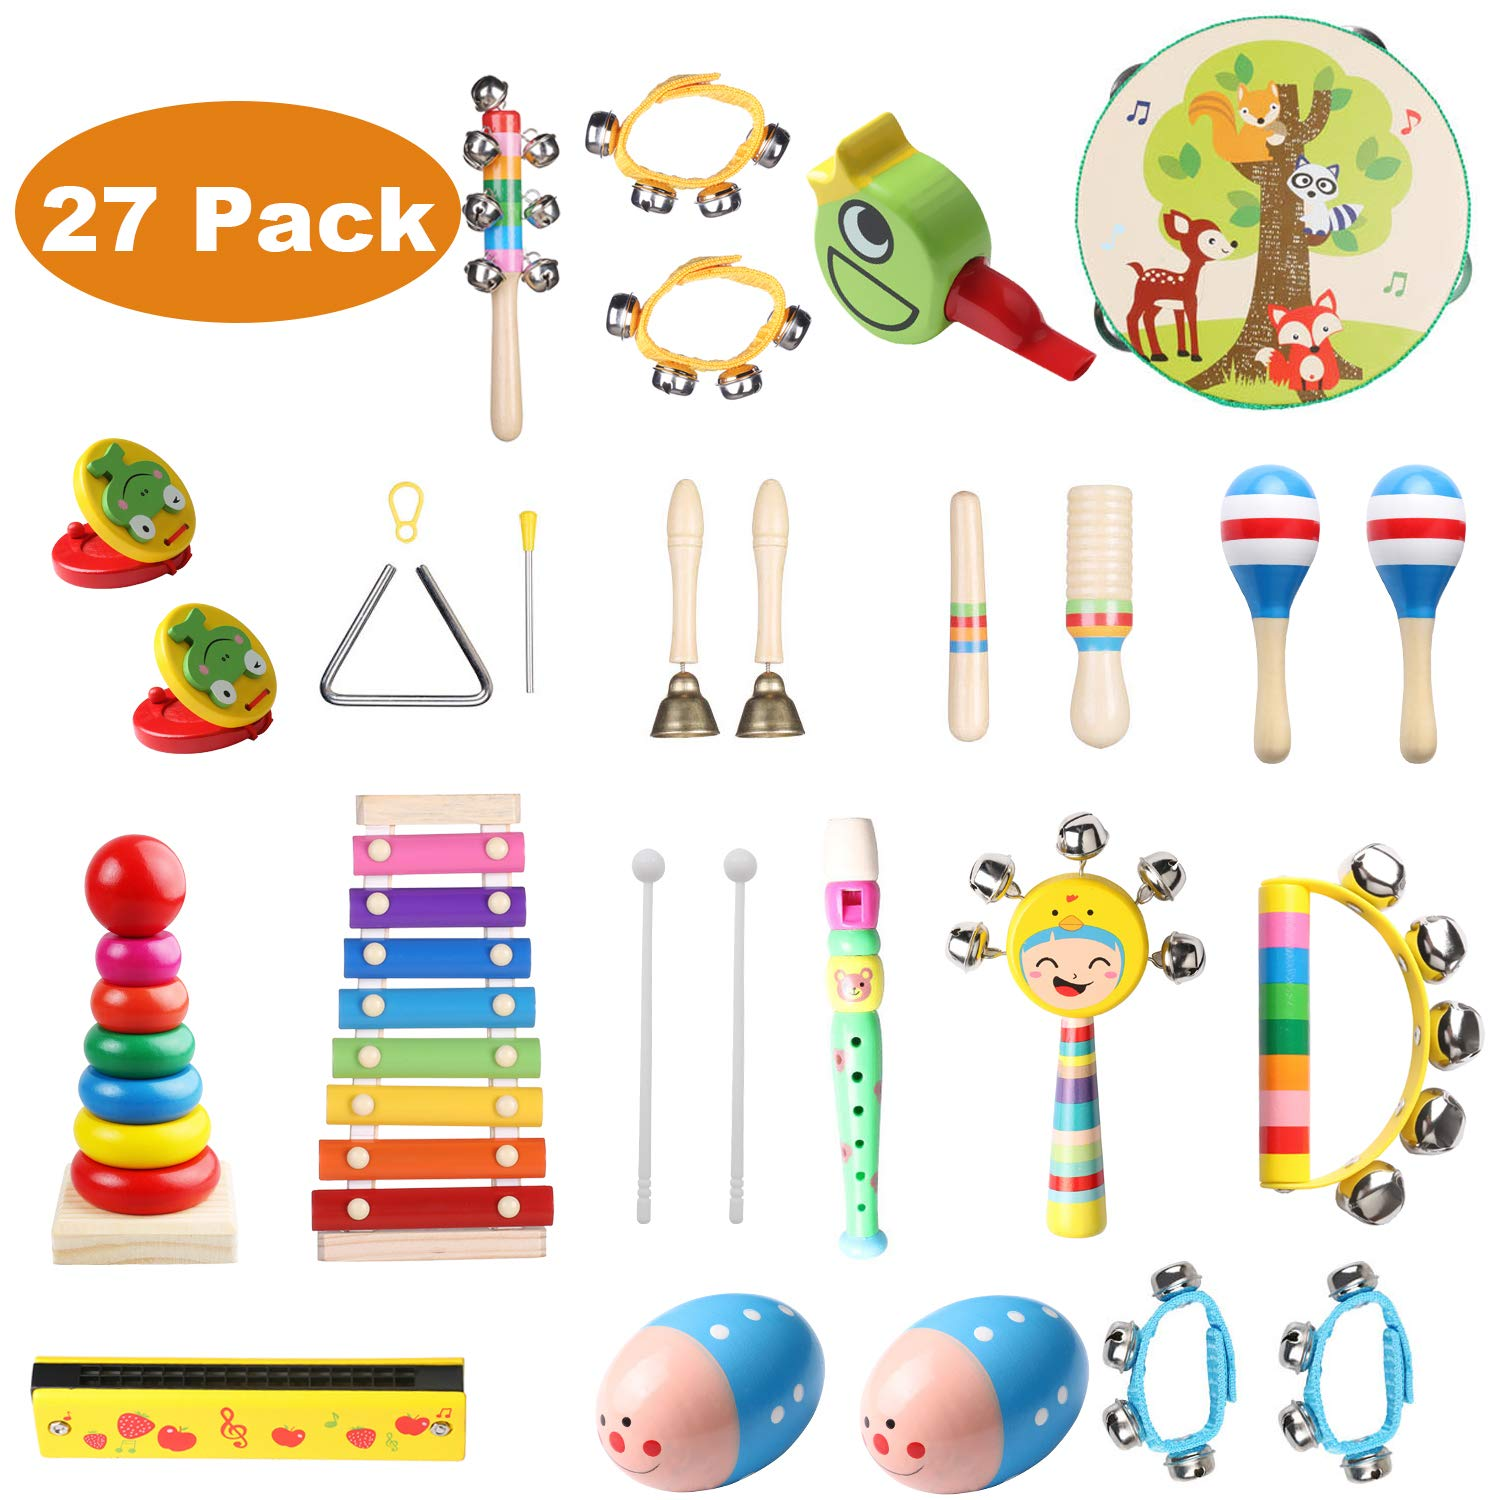 Childom Kids Musical Instruments 27PCS Wood Percussion Xylophone Toys for Boys and Girls,Child Wooden Music Shakers Percussion Instruments Tambourine Birthday Gifts Present